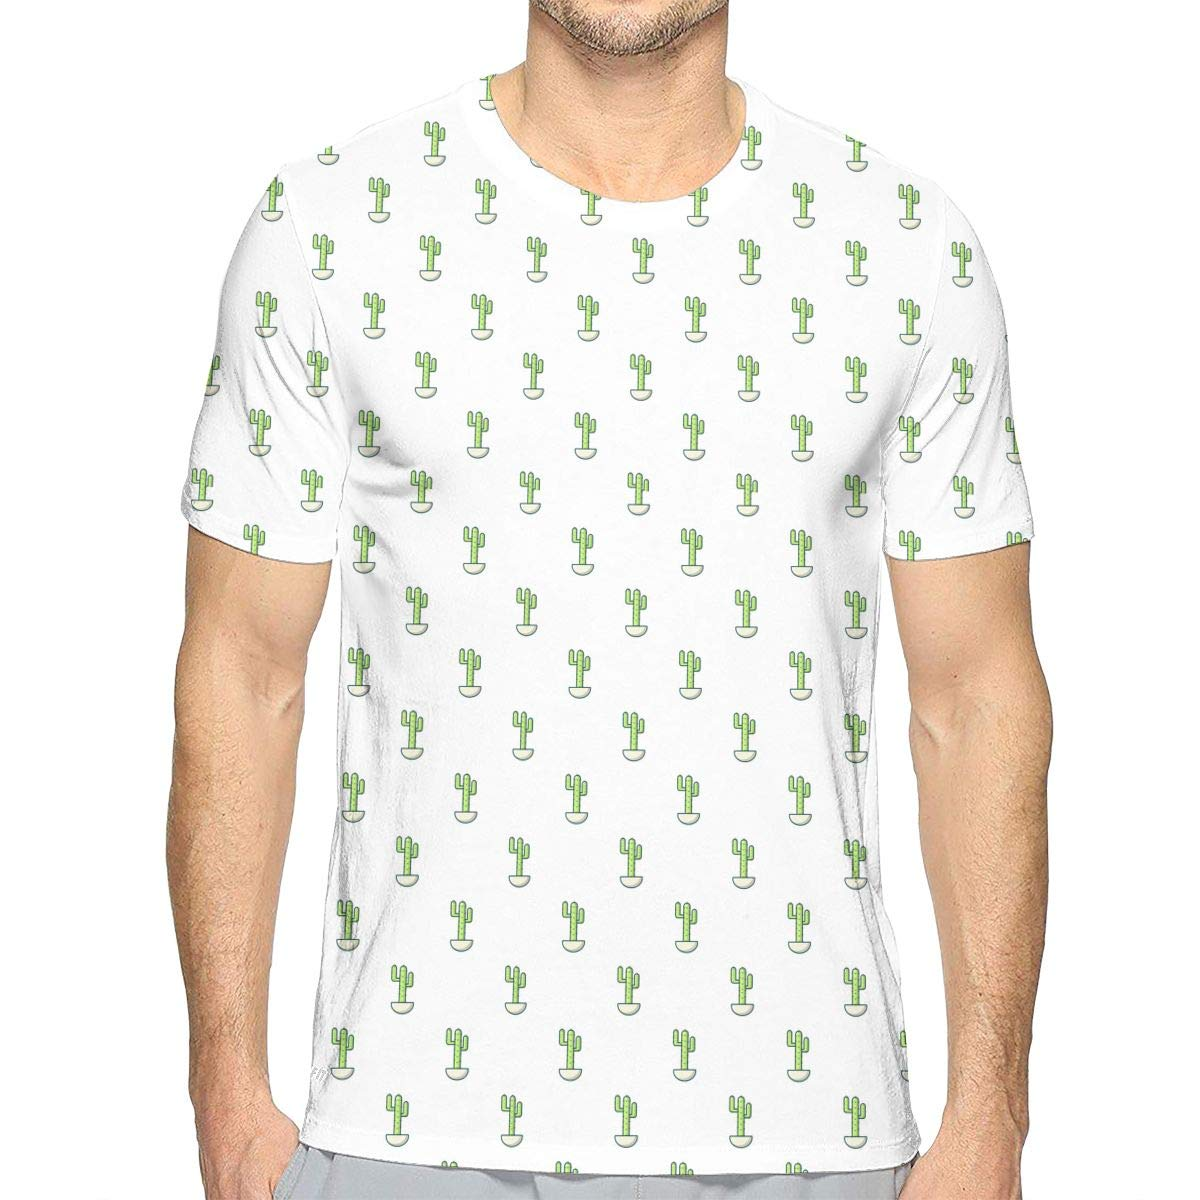 d3ab98a53 Amazon.com: Novelty Tshirts Cereus Mini Cactus Green Short-Sleeve T-Shirt  Crewneck Tee for Men: Clothing